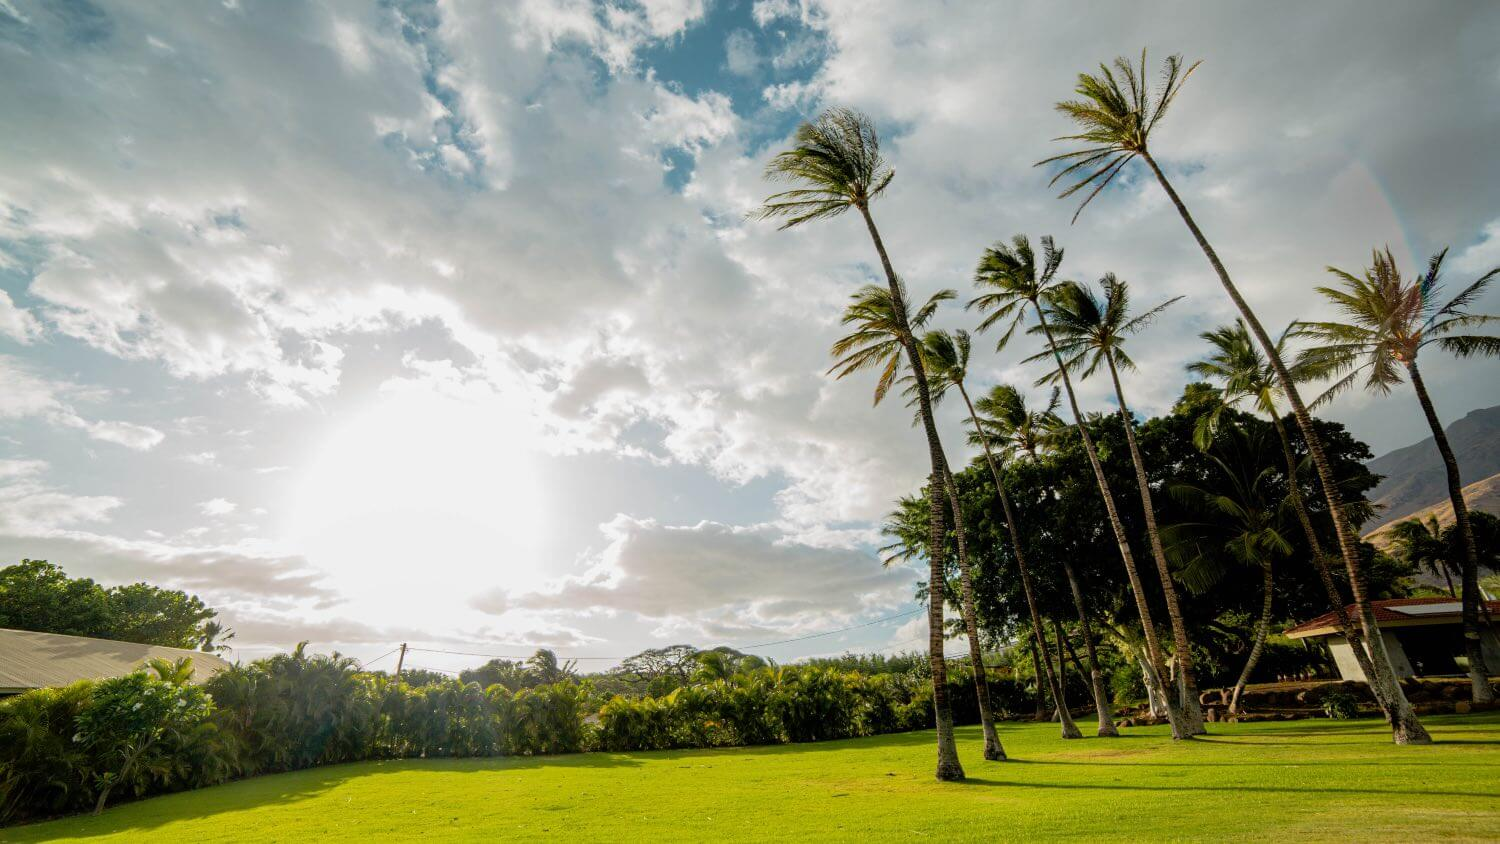 Palm Trees and green grass on the grounds of Camp Olowalu